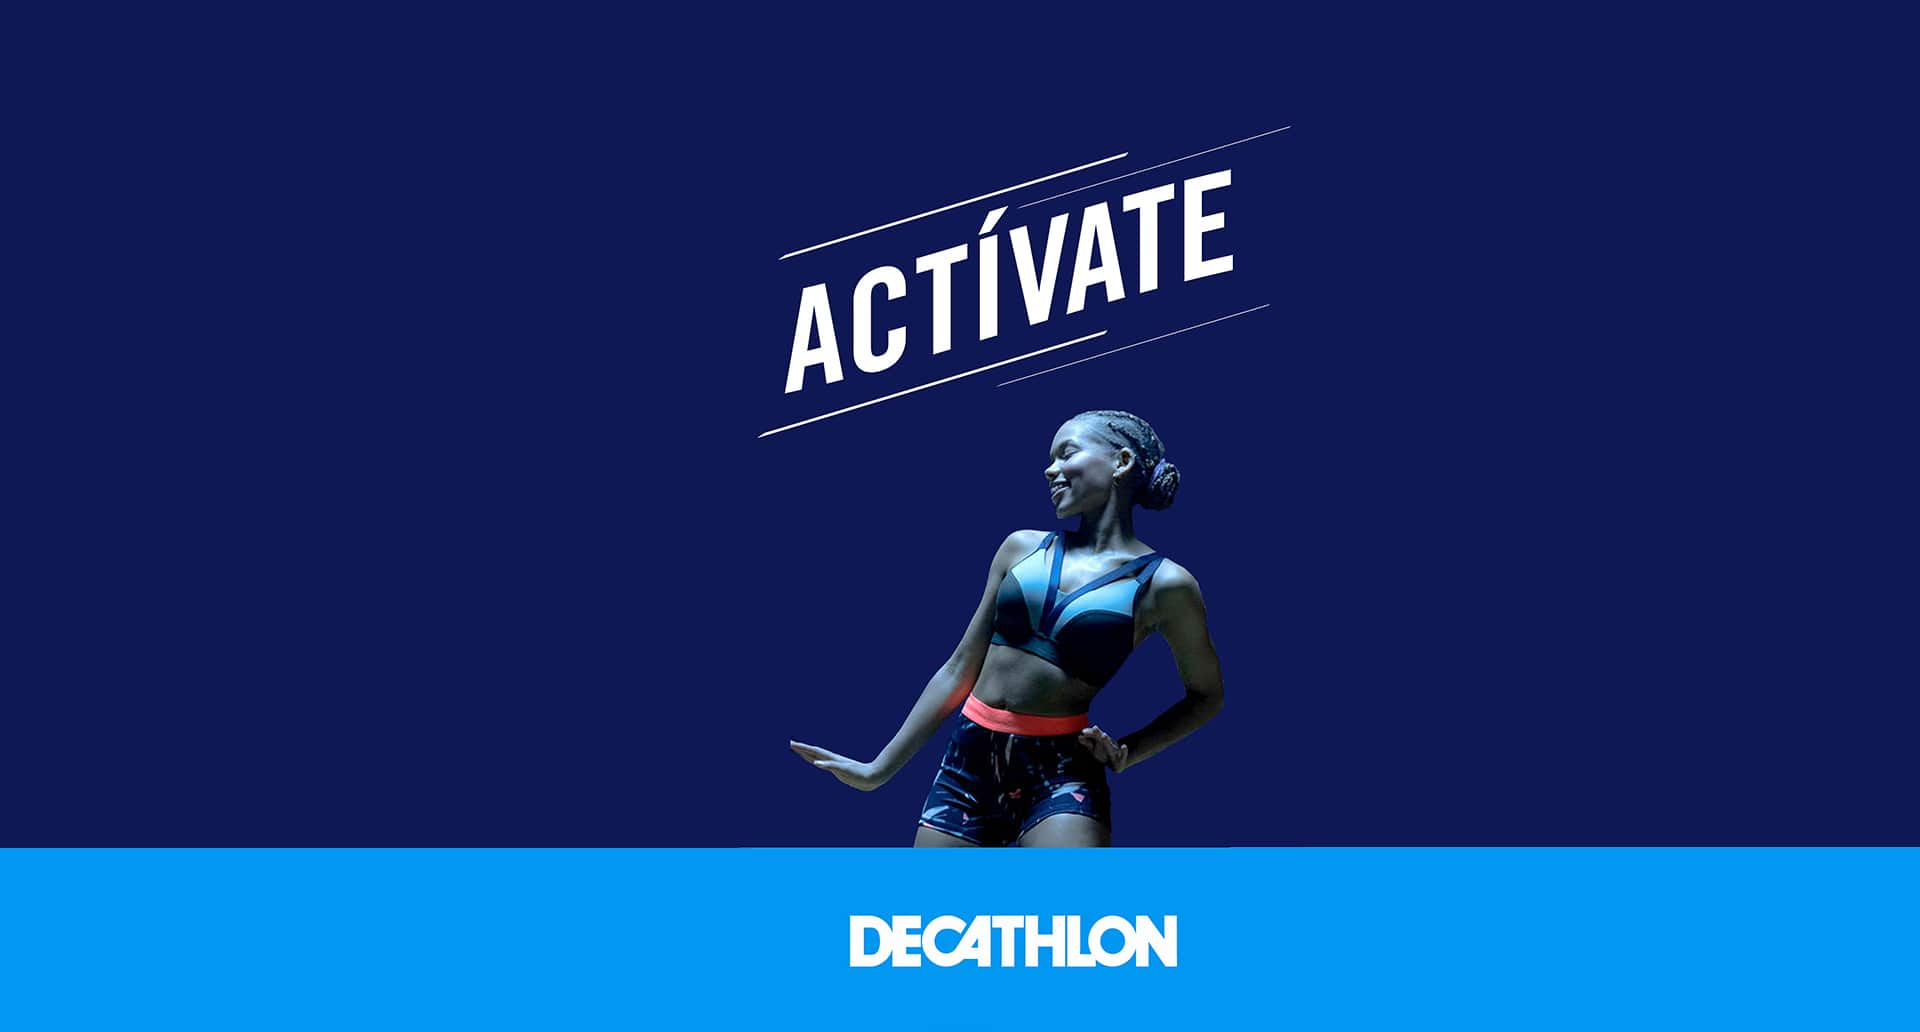 Activate Decathlon